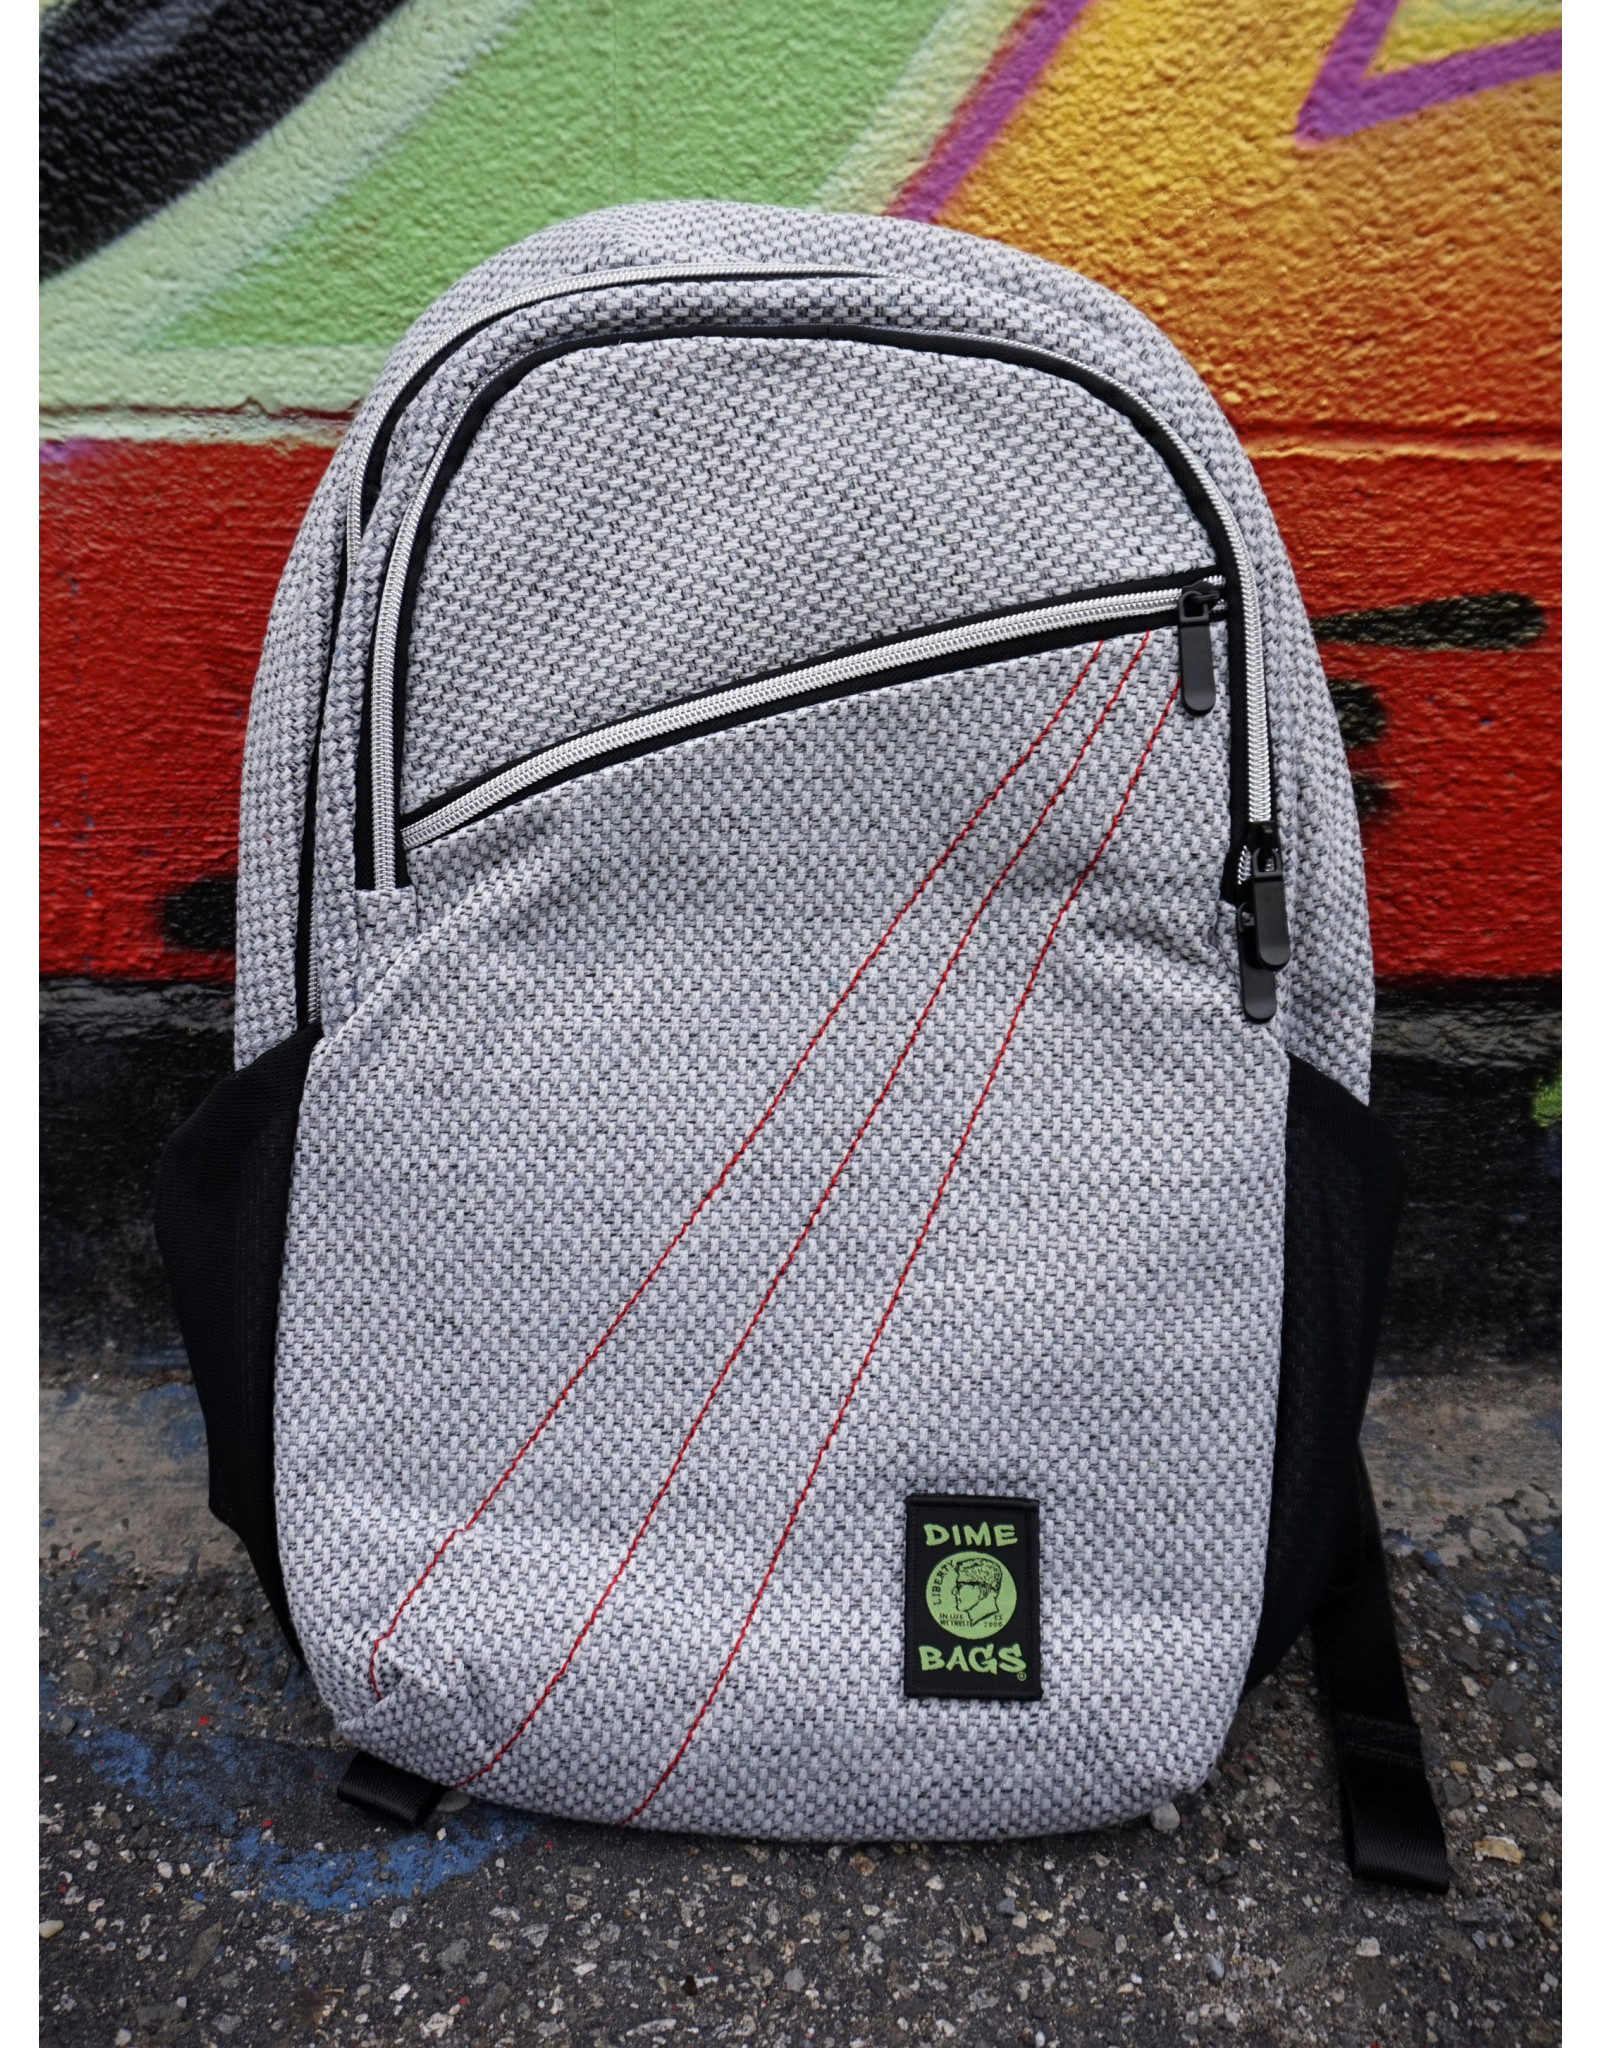 Dime Bags Dime Bags City Dweller Backpack - Silver